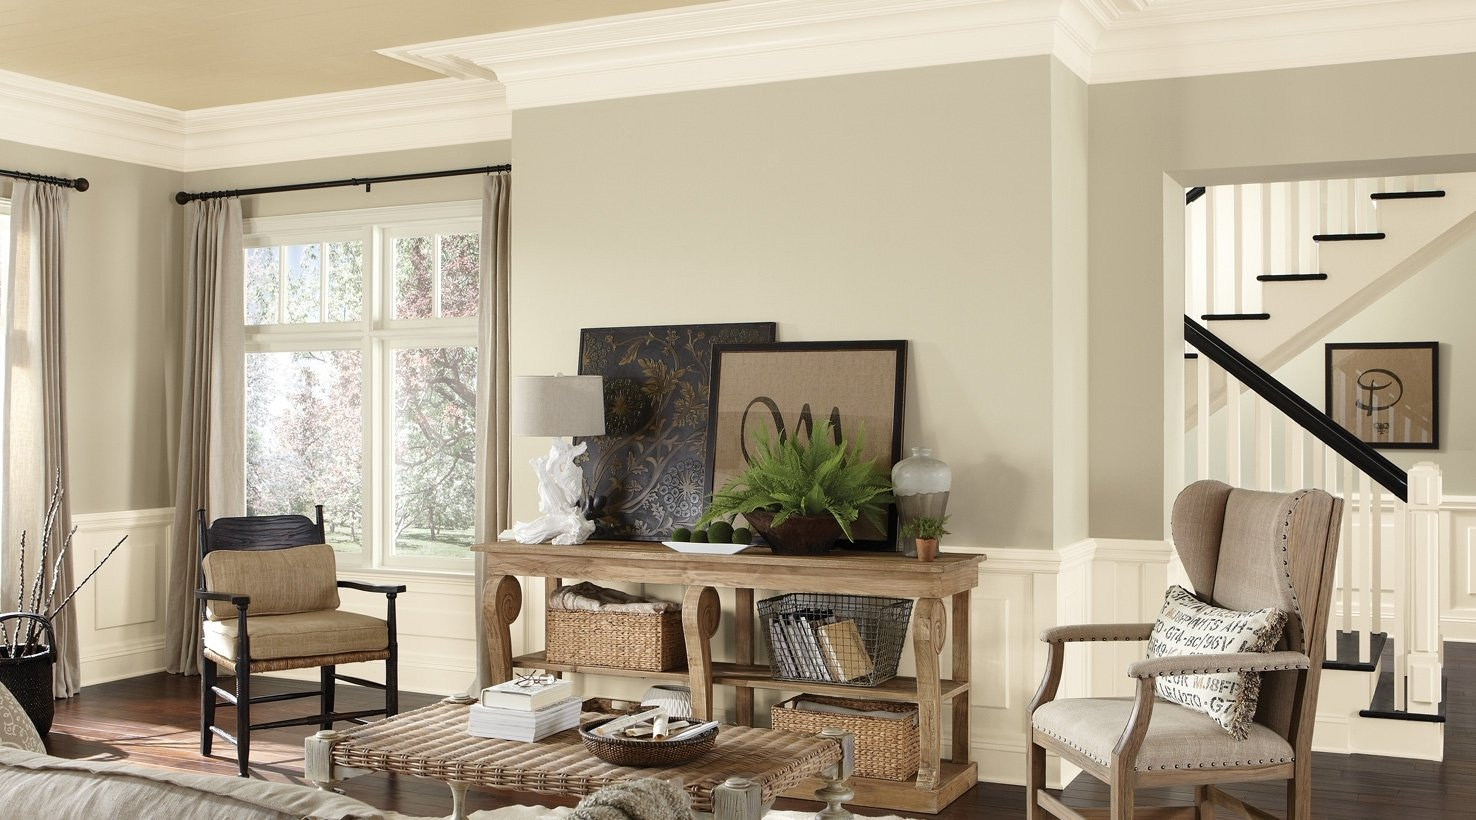 10 Most Recommended Living Room Wall Color Ideas living room paint color ideas inspiration gallery sherwin williams 25 2020